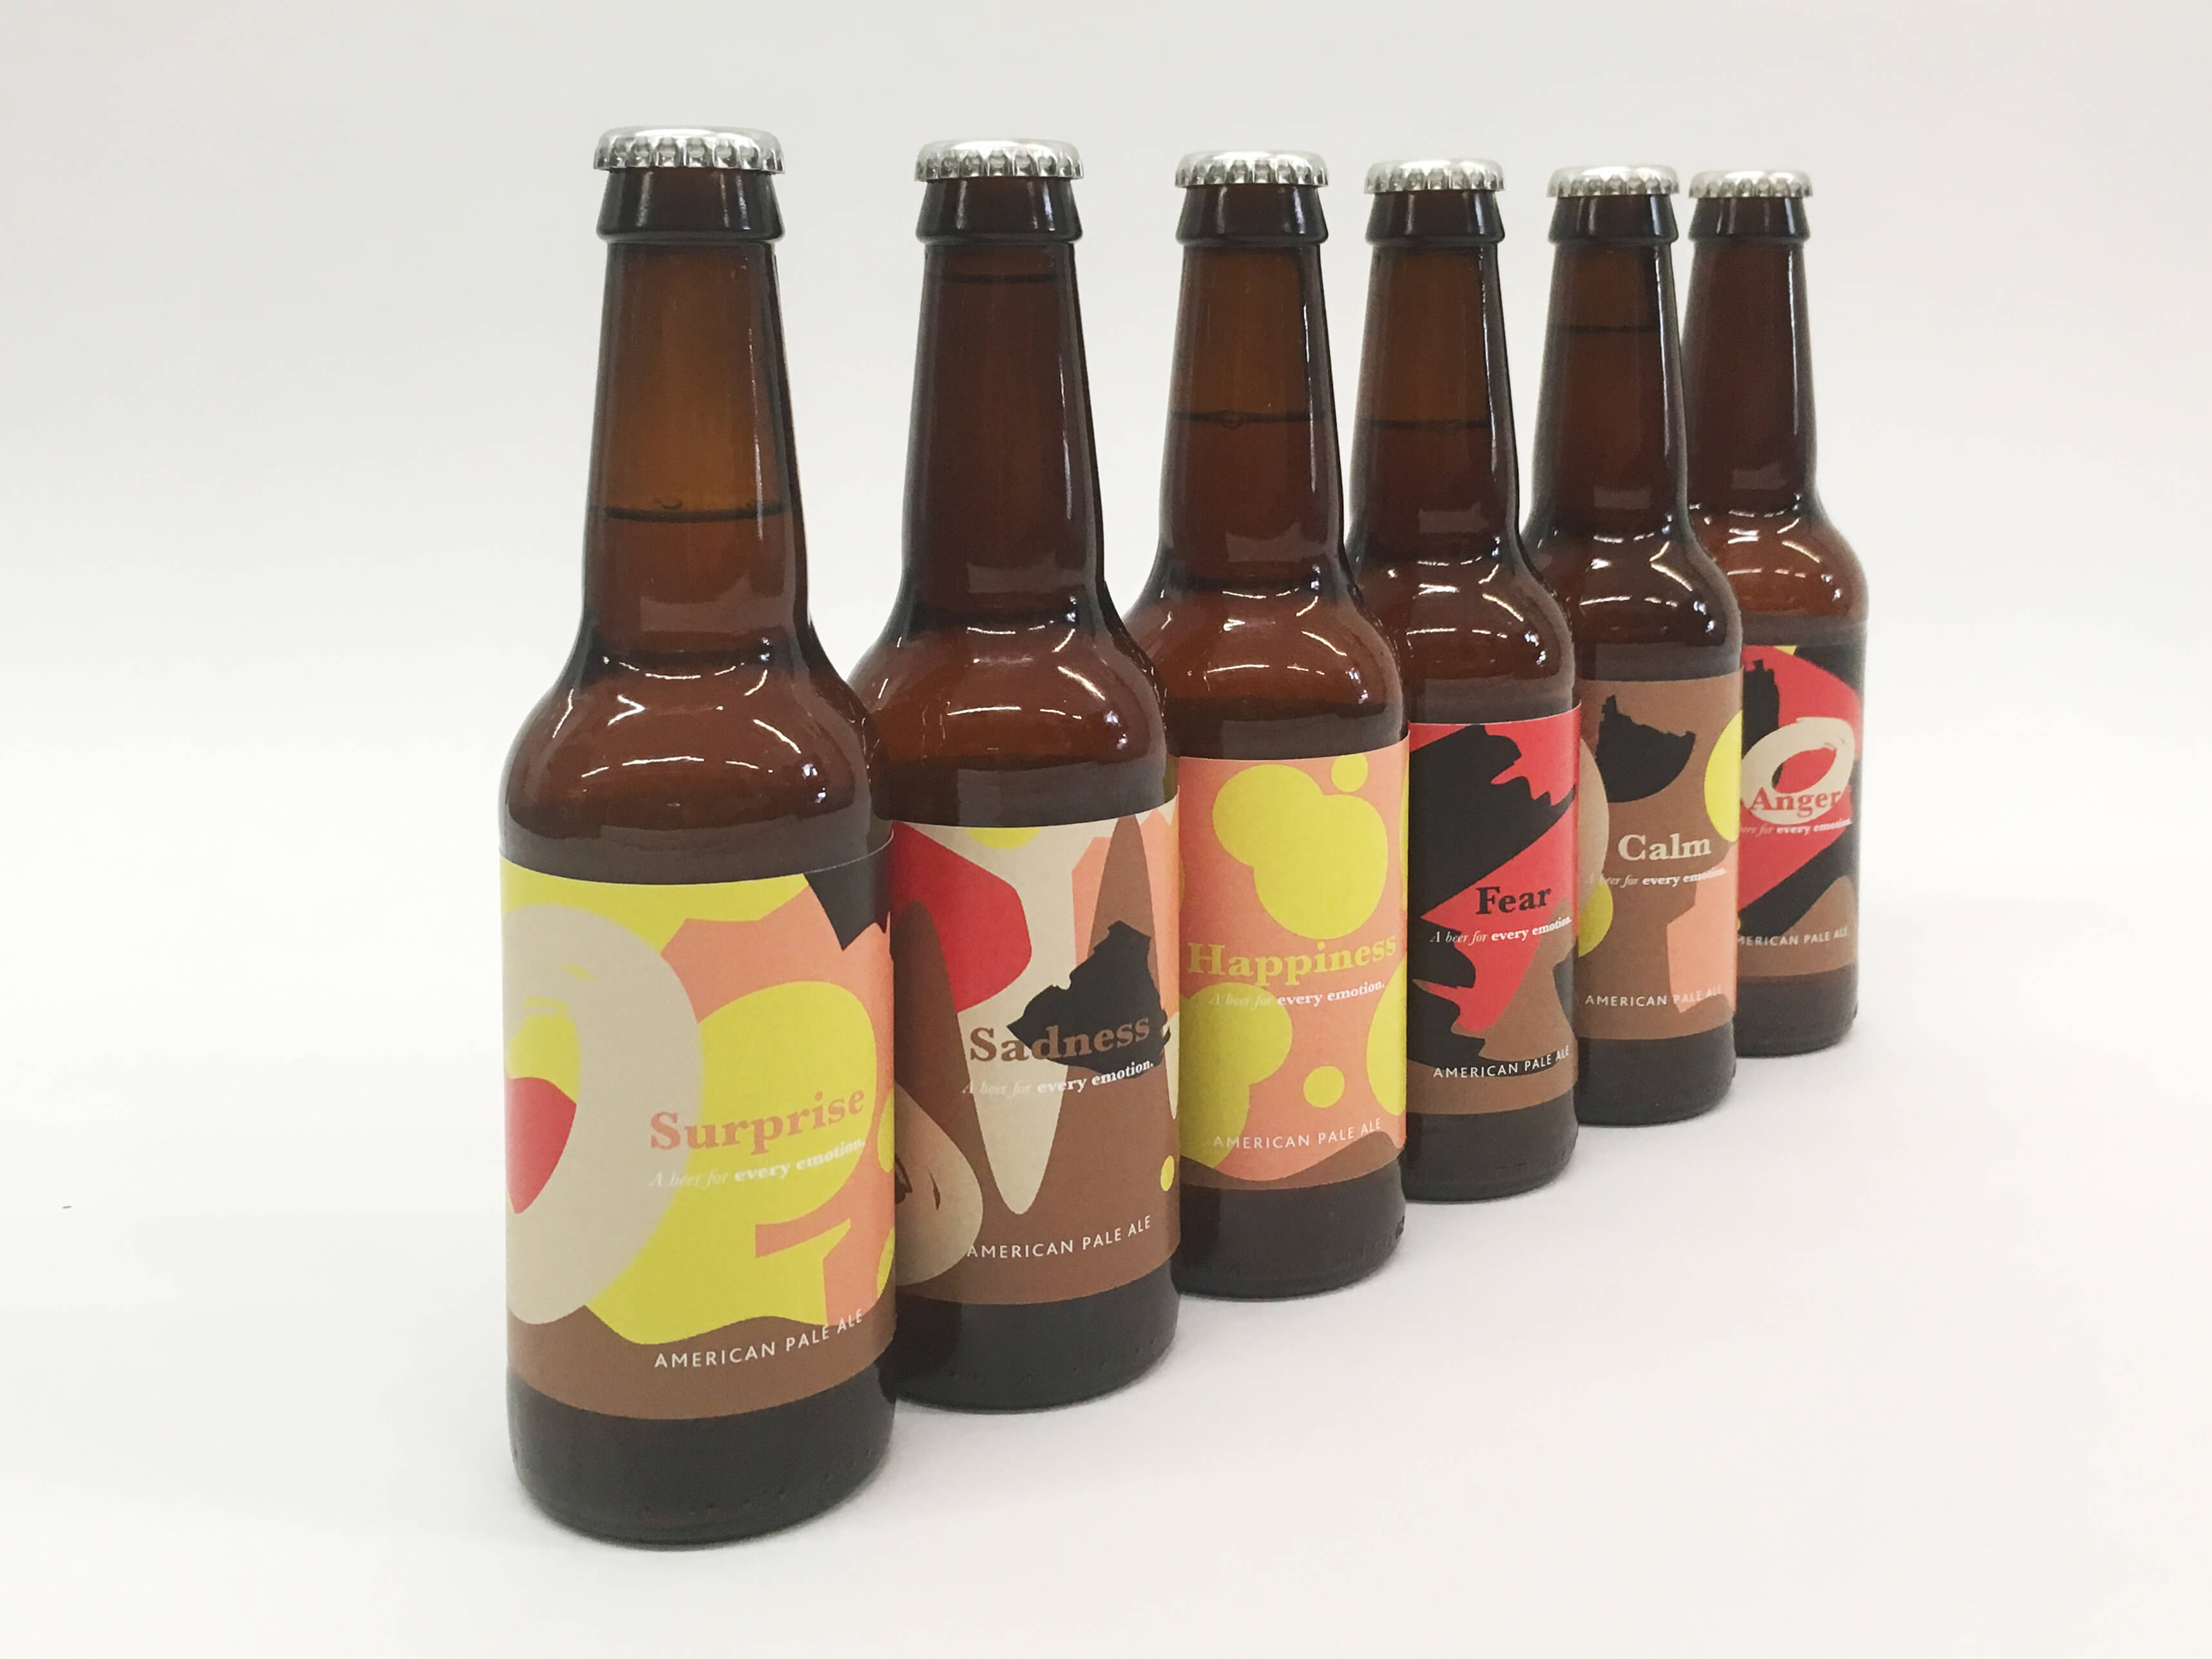 Six beers with bespoke labels based on emotions